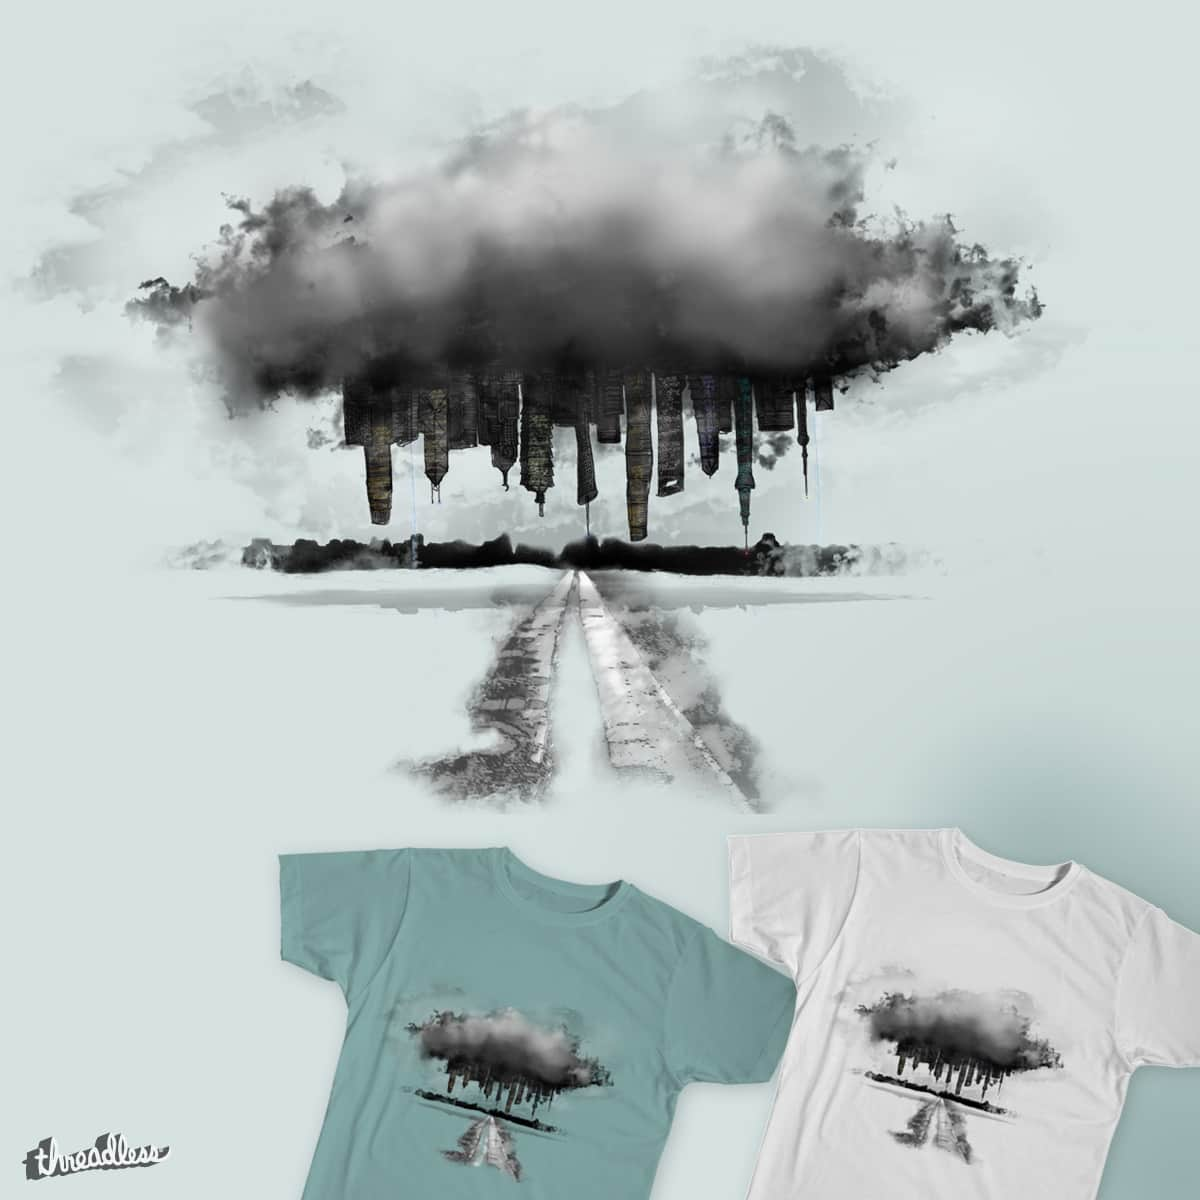 Abduction of a skyline  by Hayden_Duench on Threadless